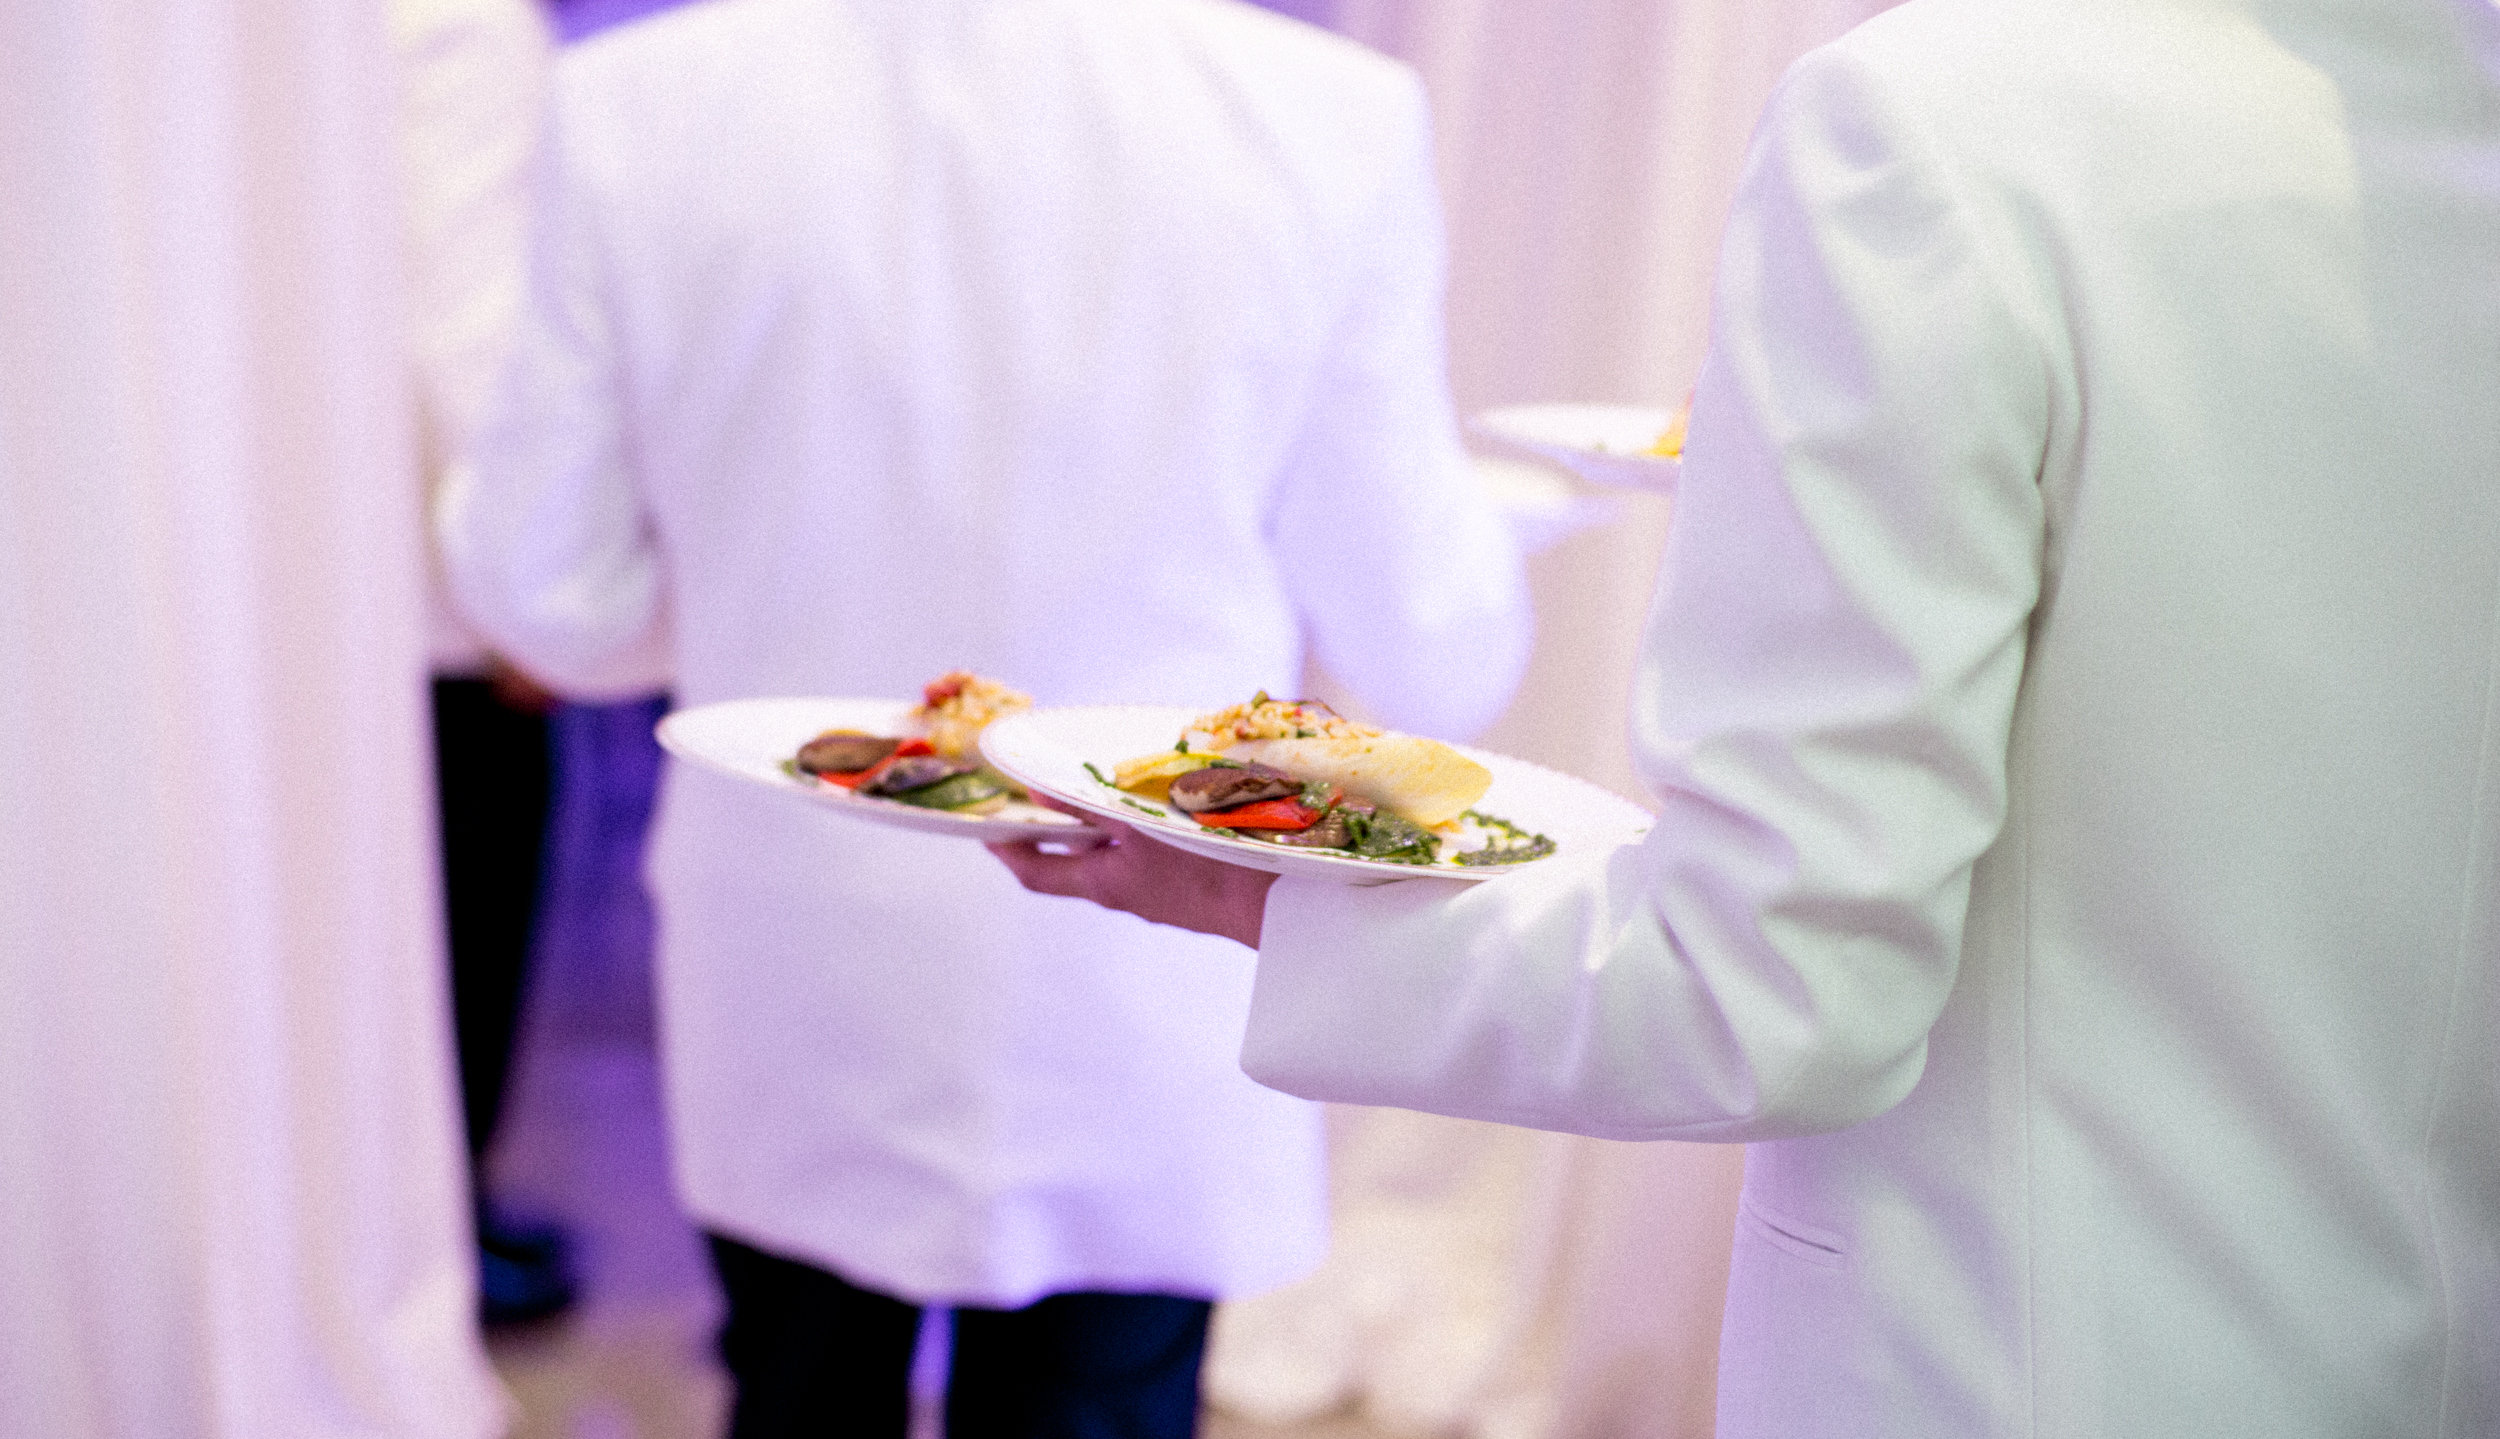 thierry isambert catering & gala production nws-0029.jpg